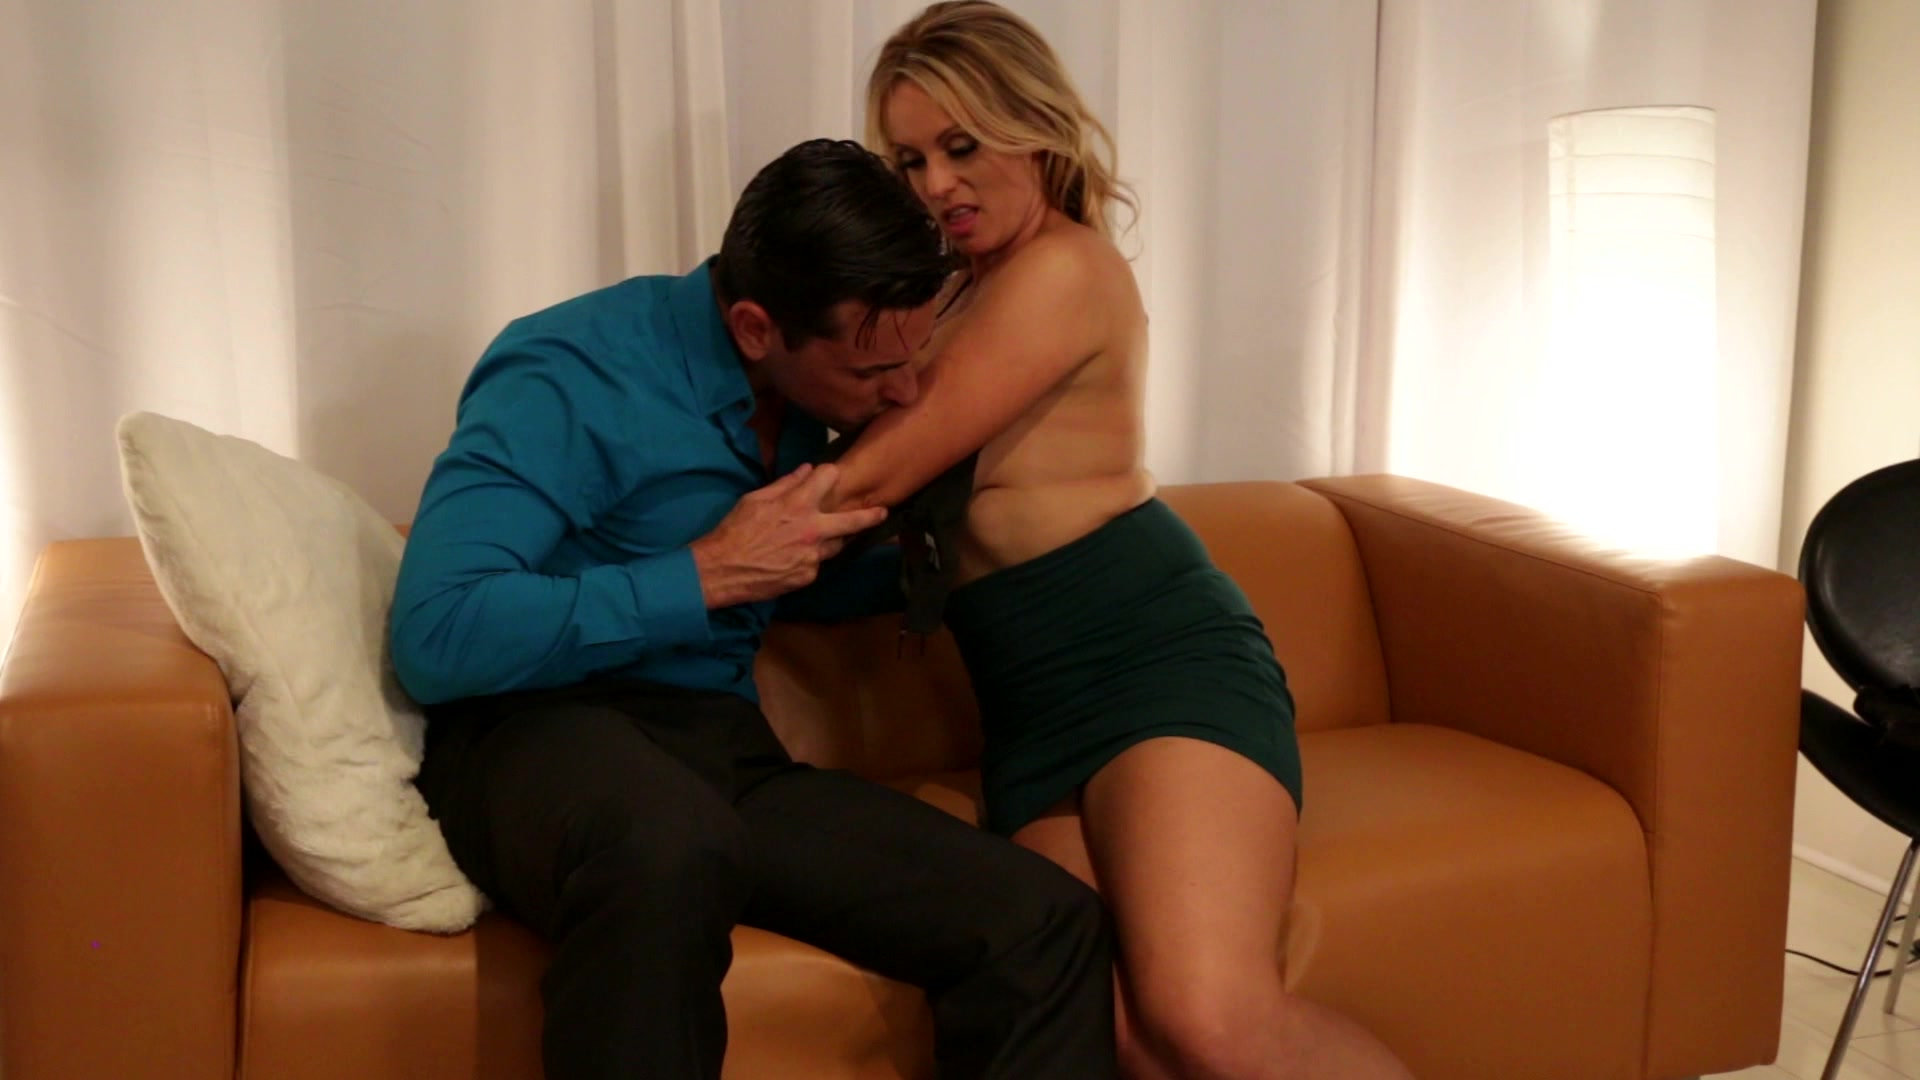 Scene with Stormy Daniels - image 12 out of 20